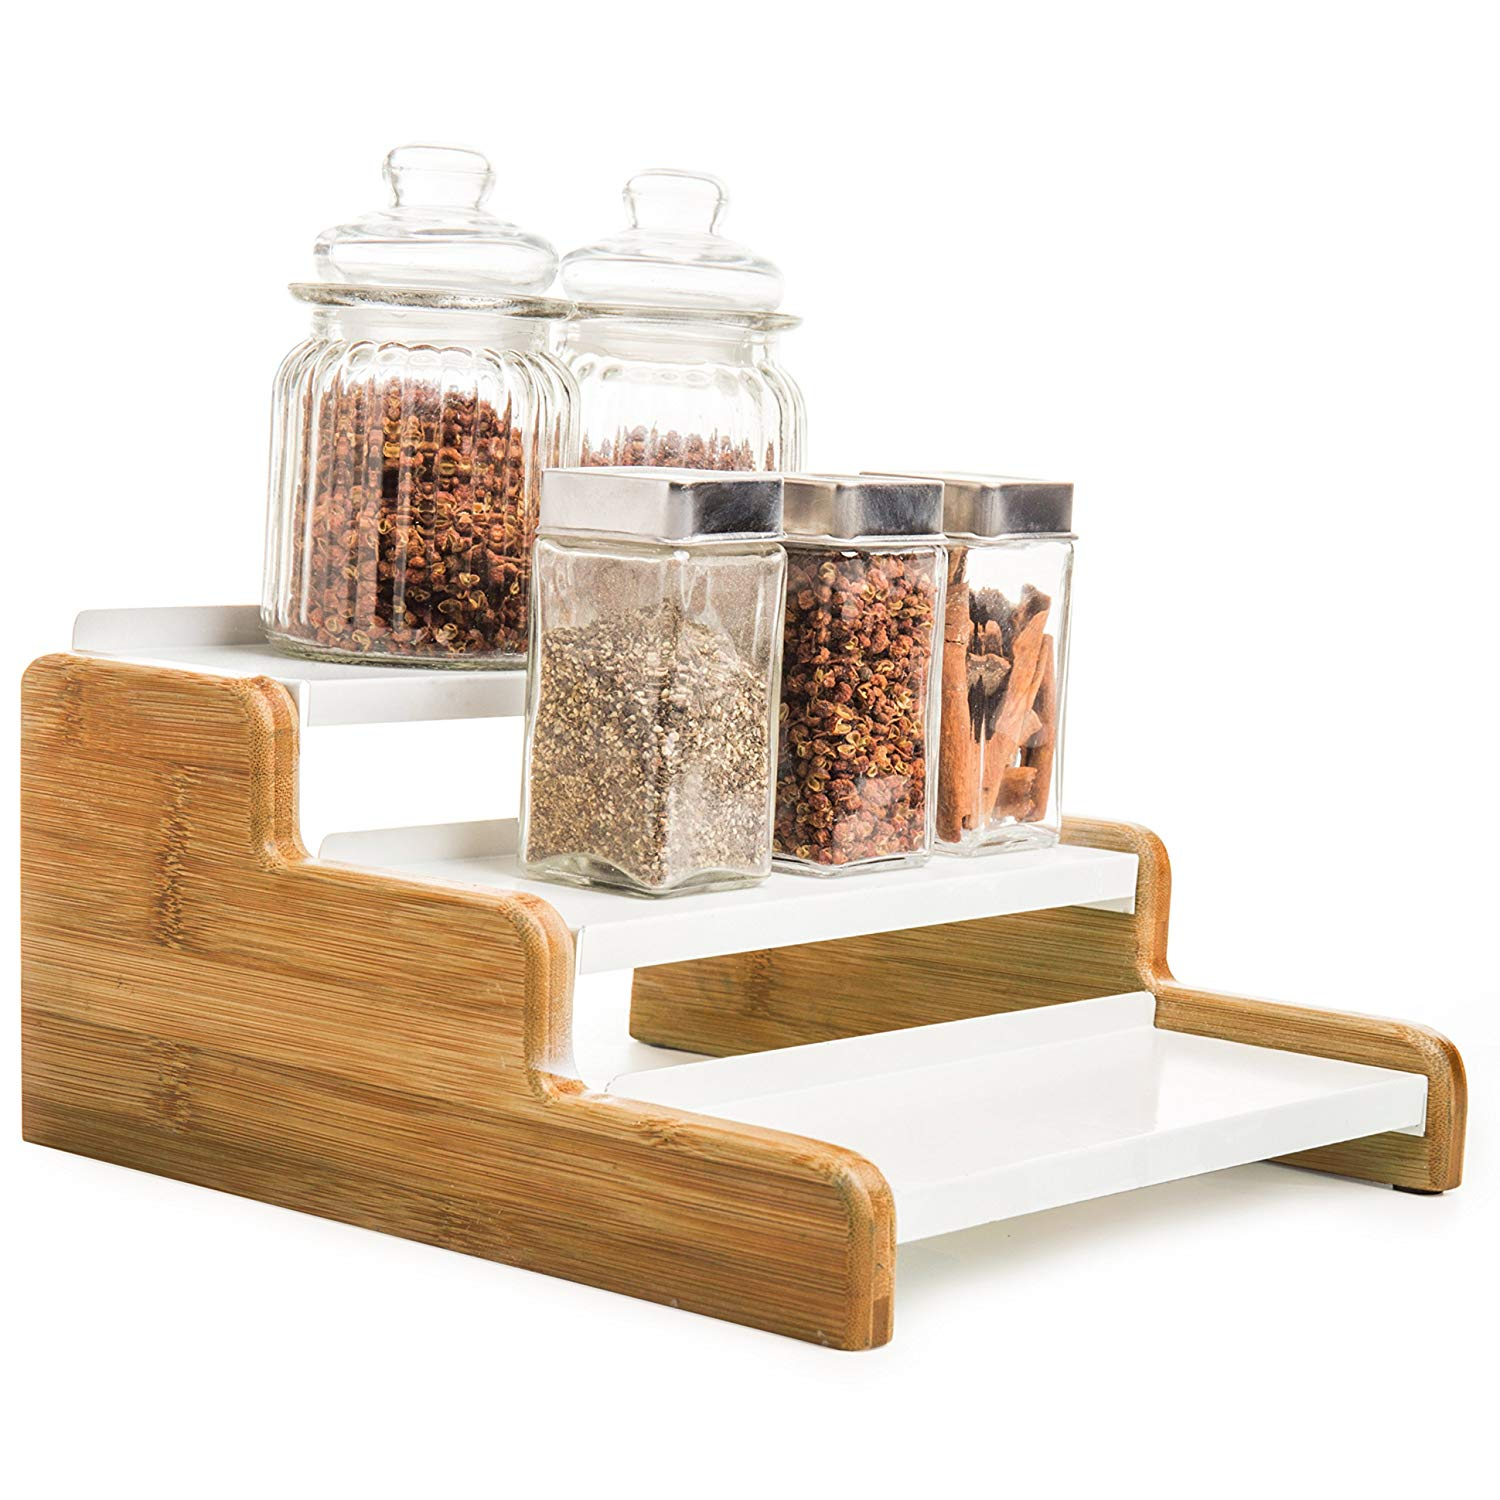 MyGift 3-Tier Wood & Metal Spice Rack Organizer, Kitchen Counter Storage Shelf